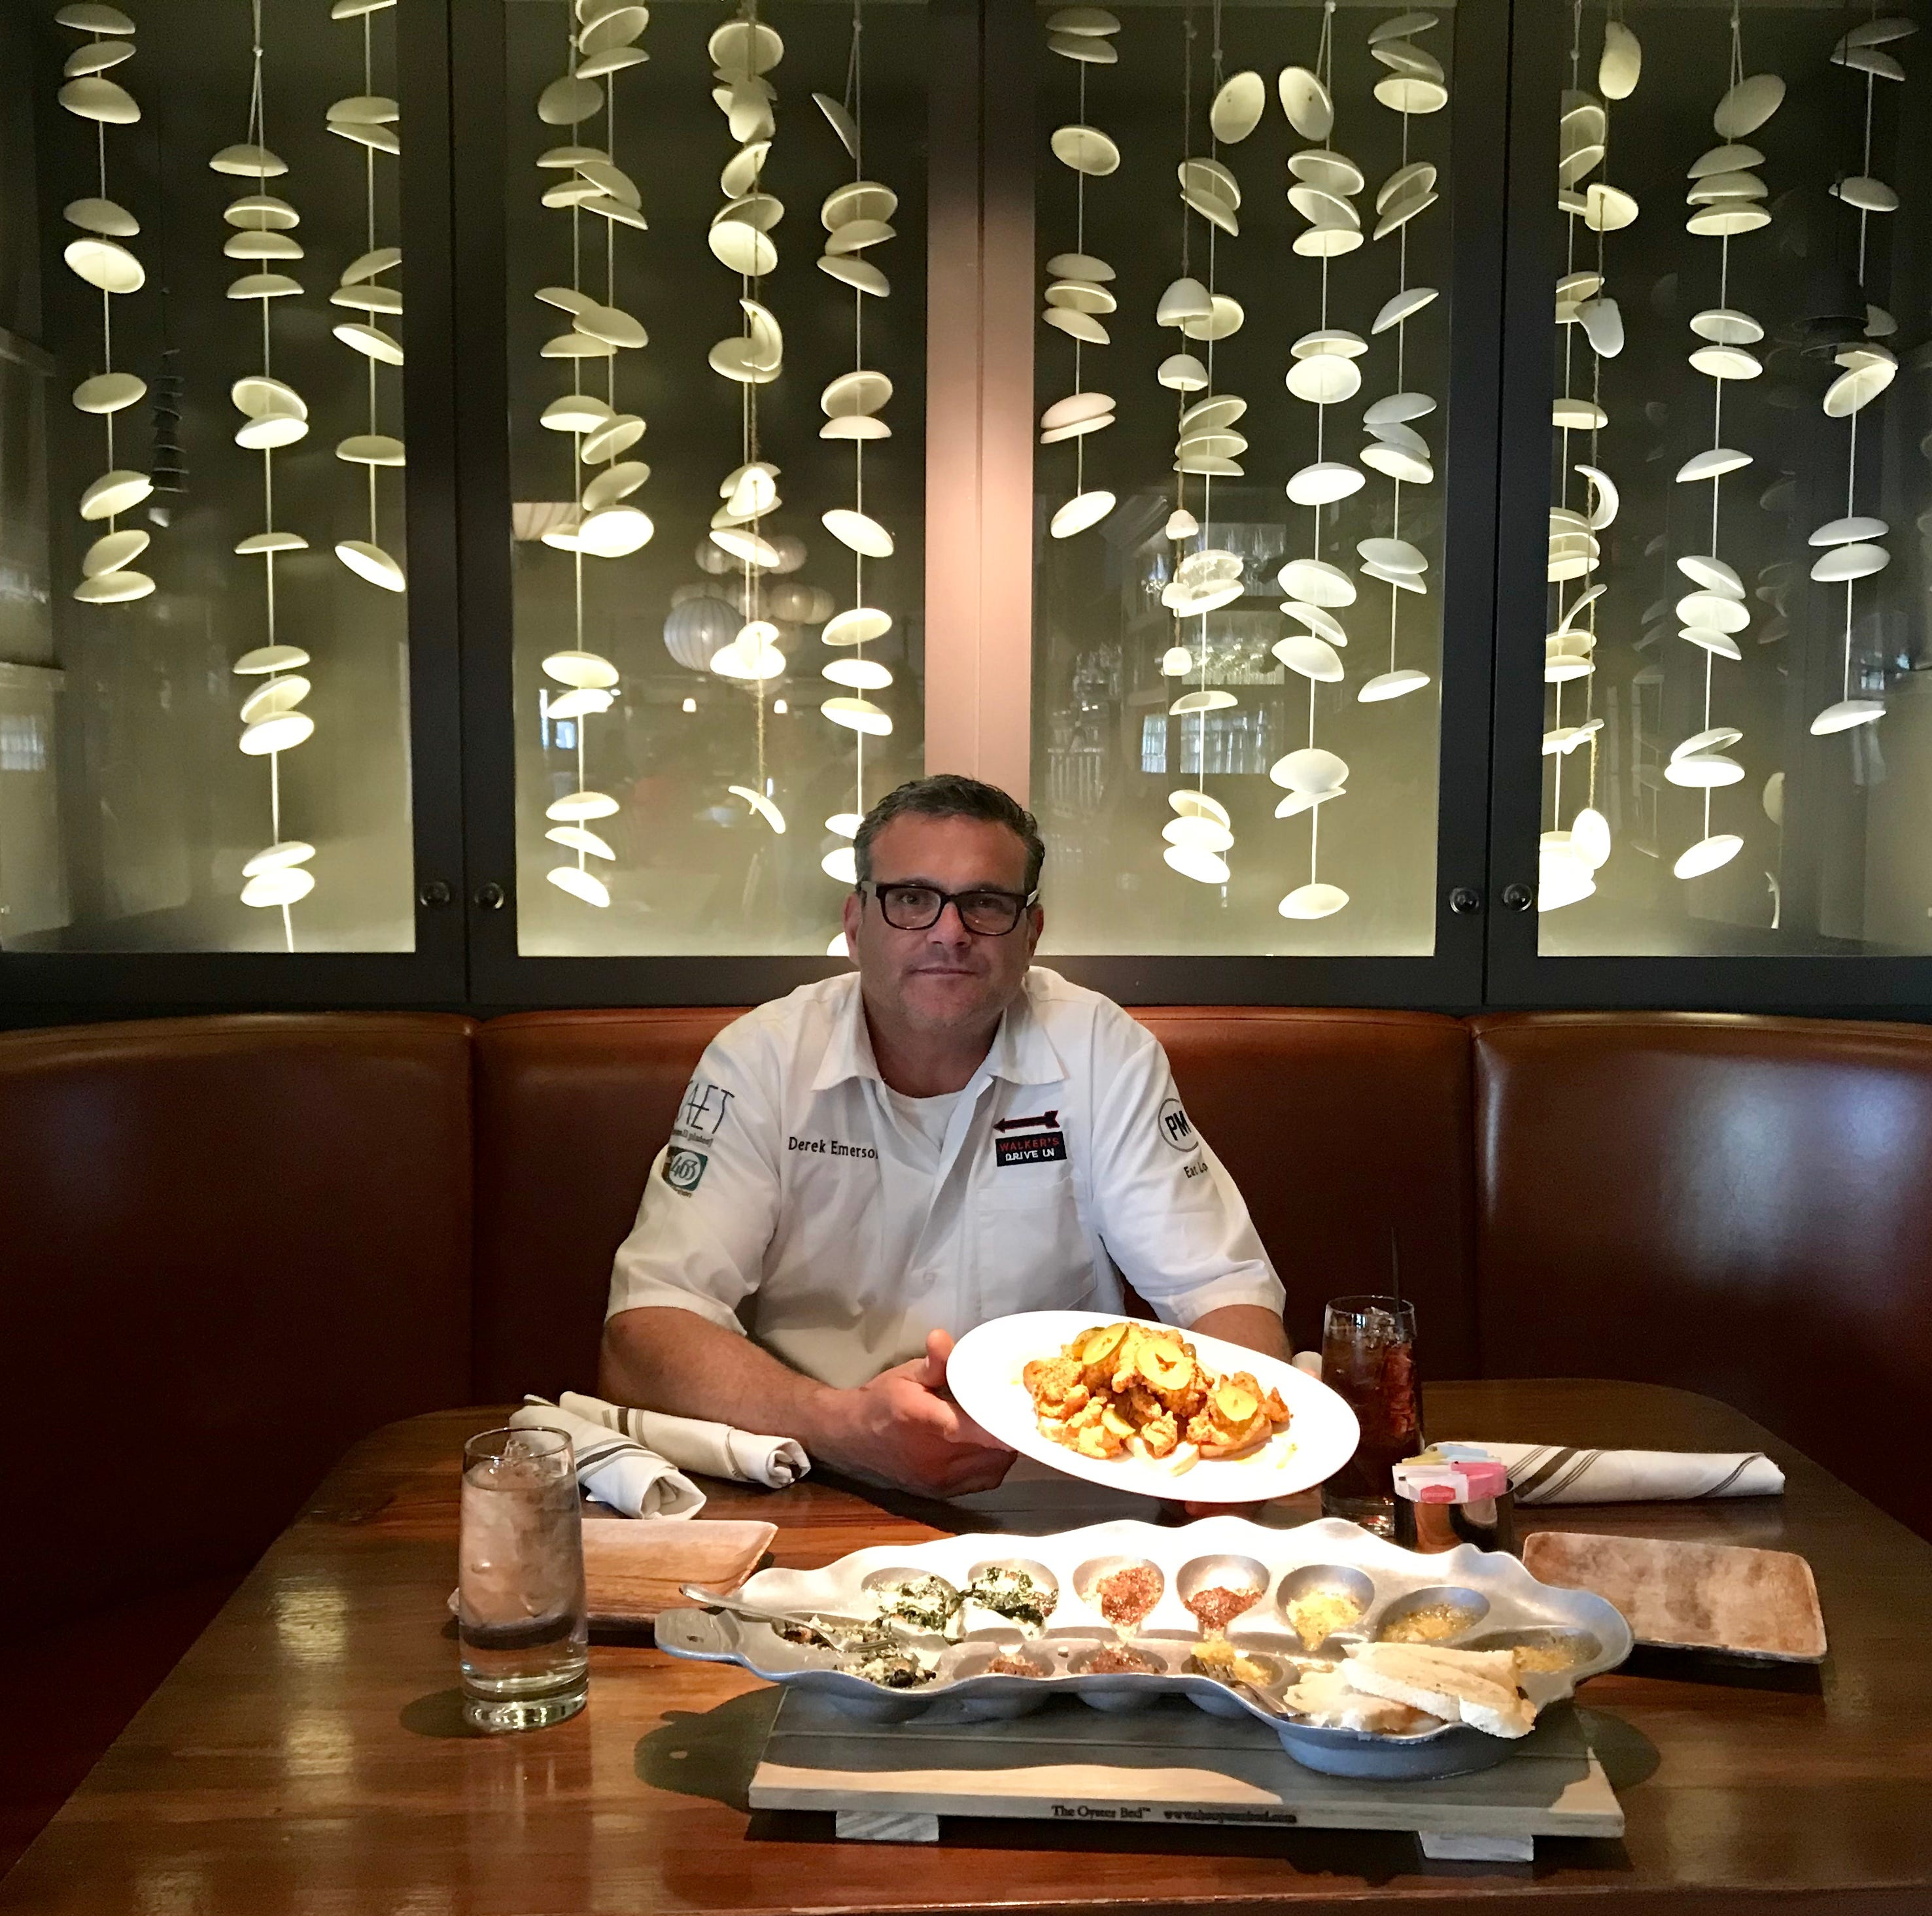 'It's more approachable': CAET's new Ridgeland location goes big on seafood, atmosphere